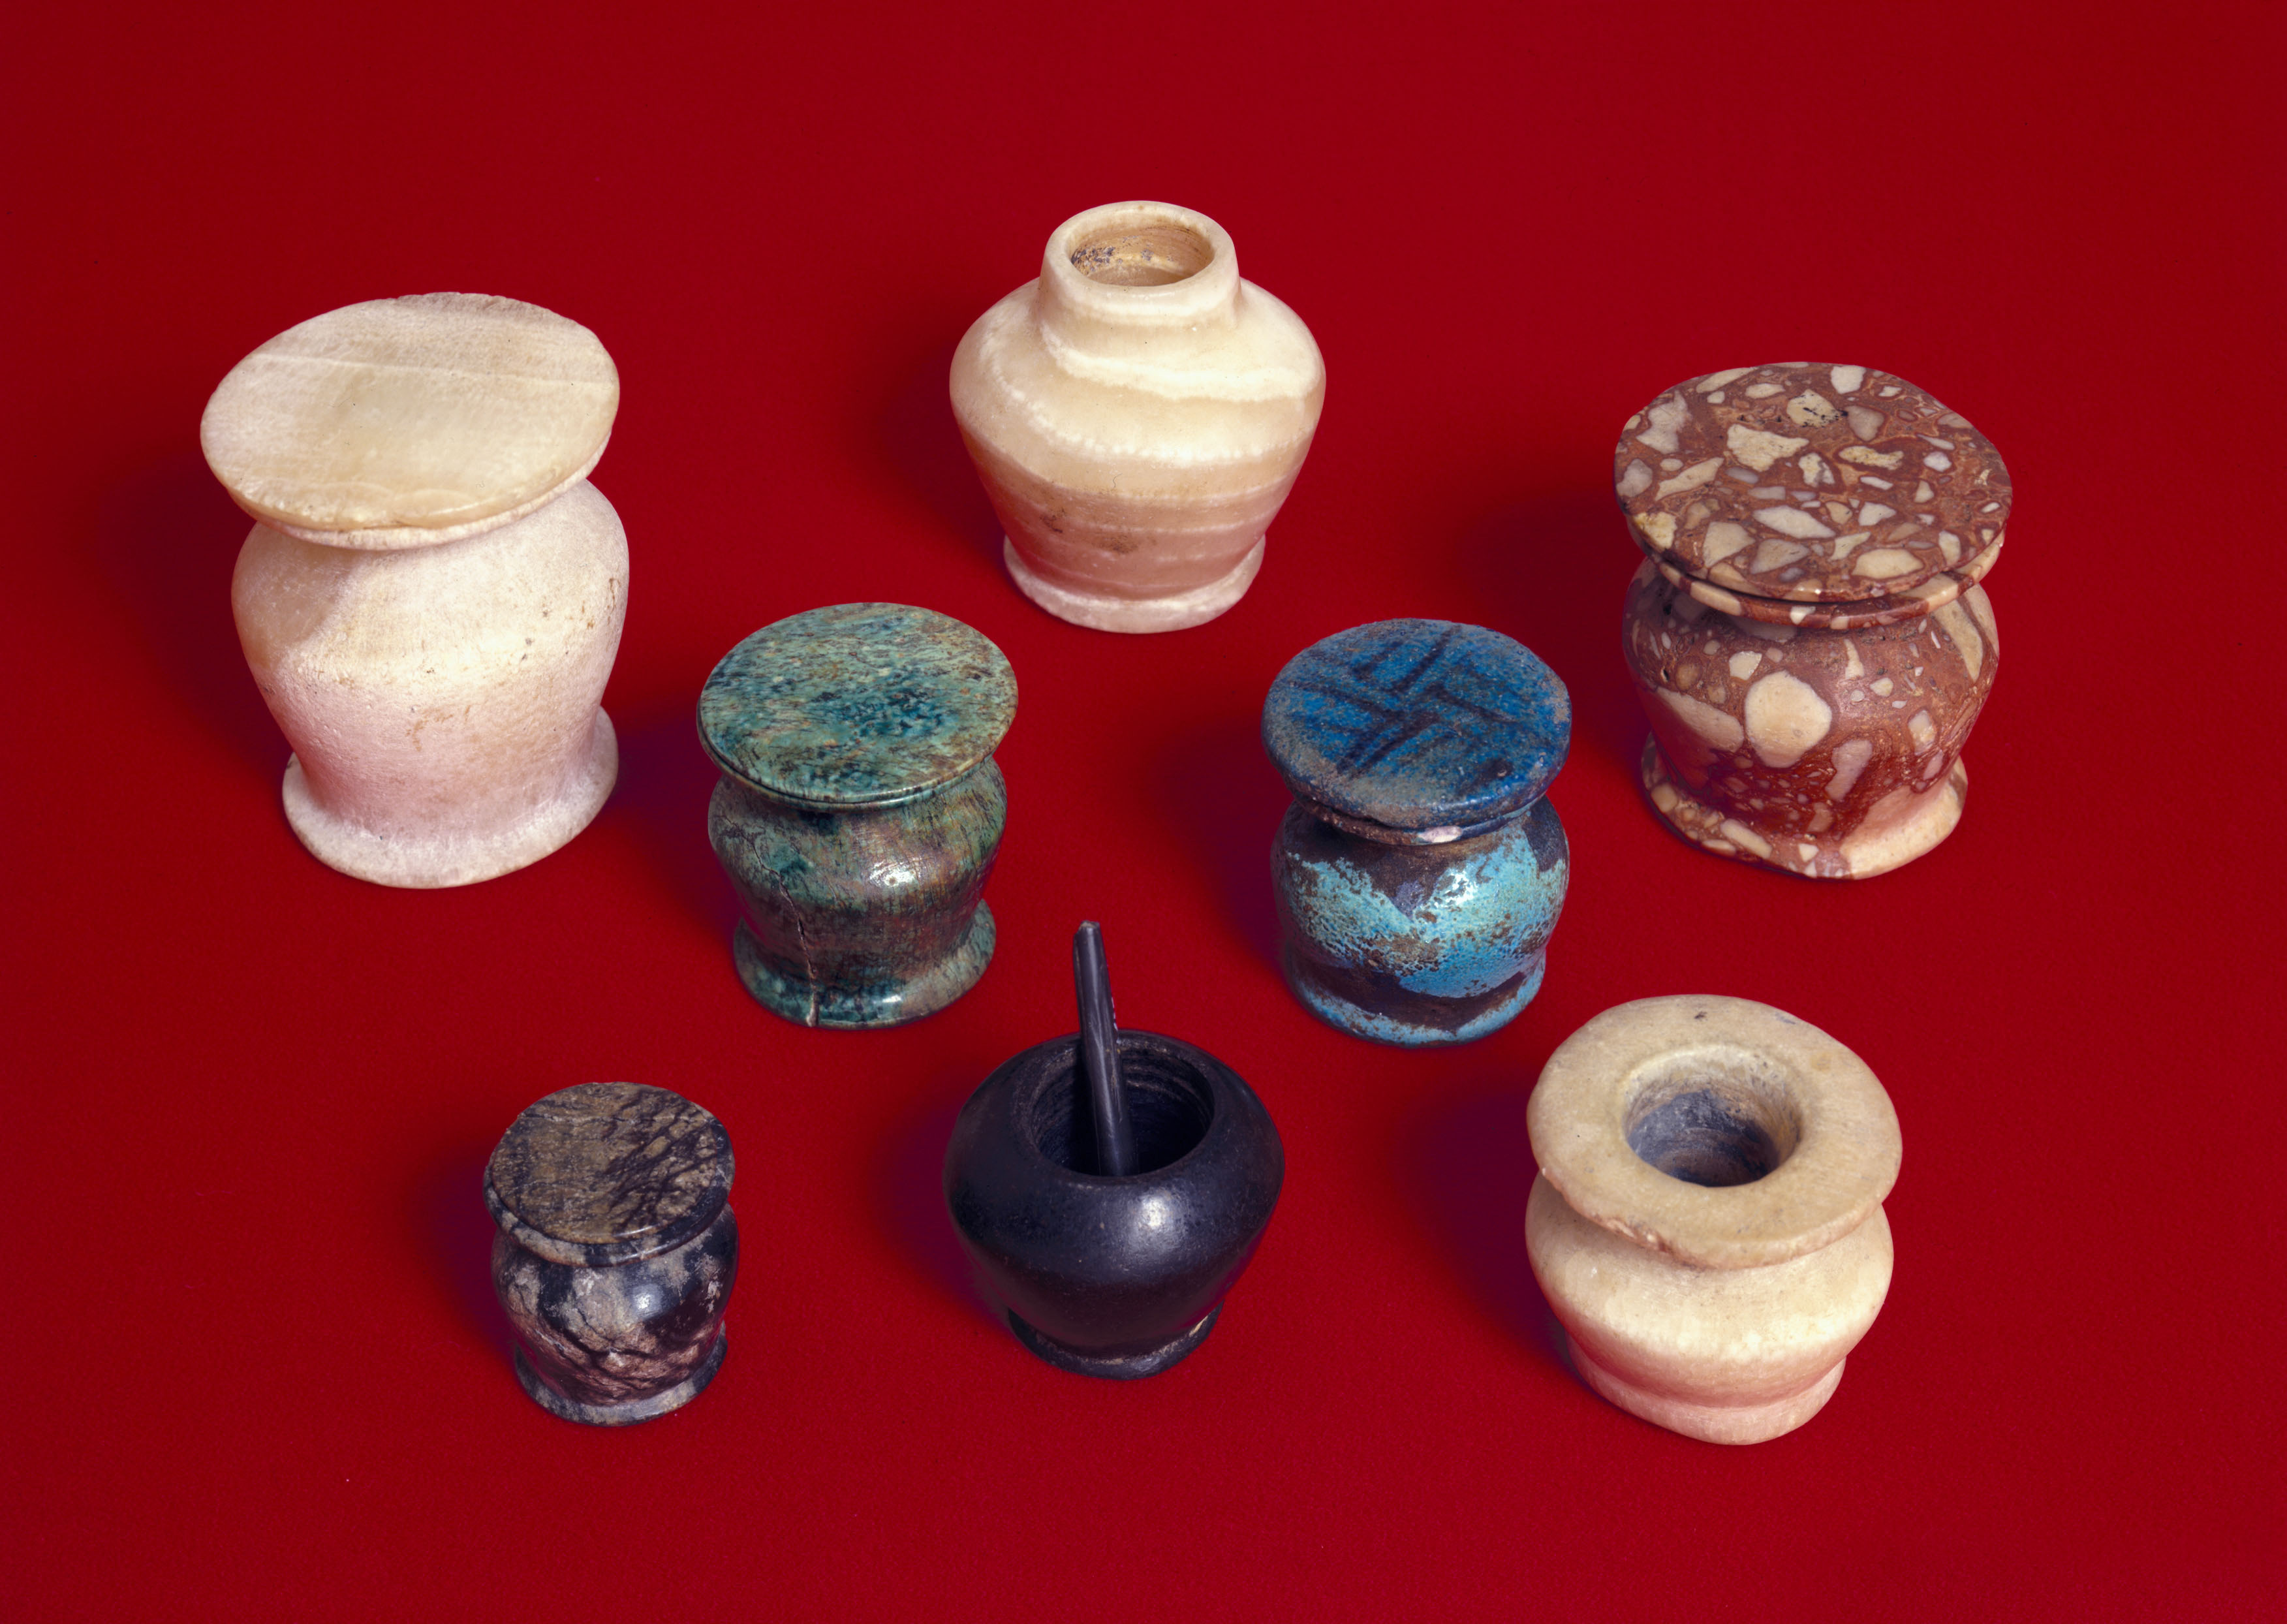 8 inventions we owe to the ancients history lists granite kohl pots like these were used to mix the ingredients together for ancient egyptian make biocorpaavc